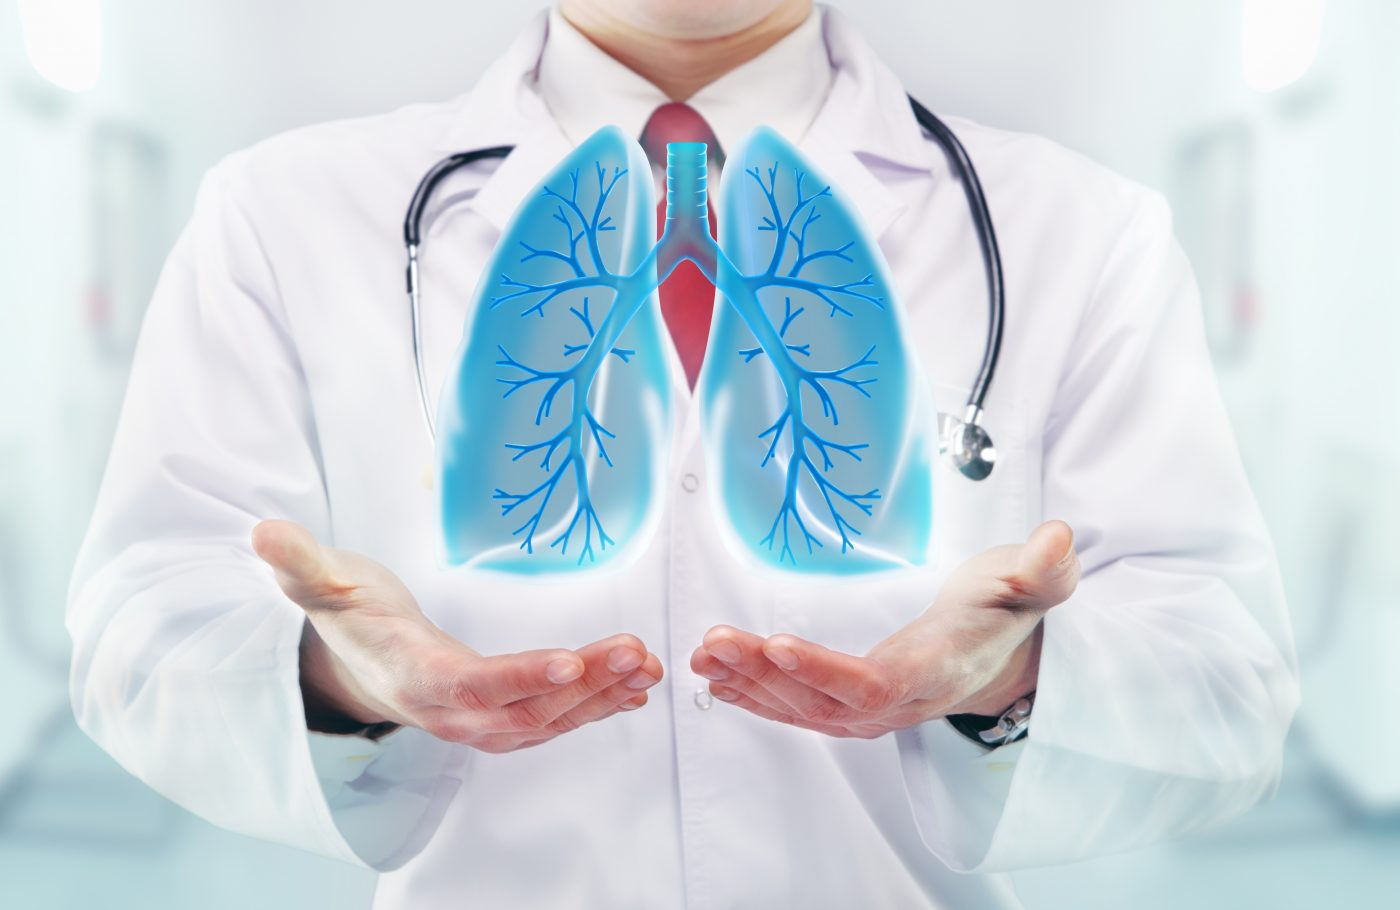 second-gen lung-on-a-chip